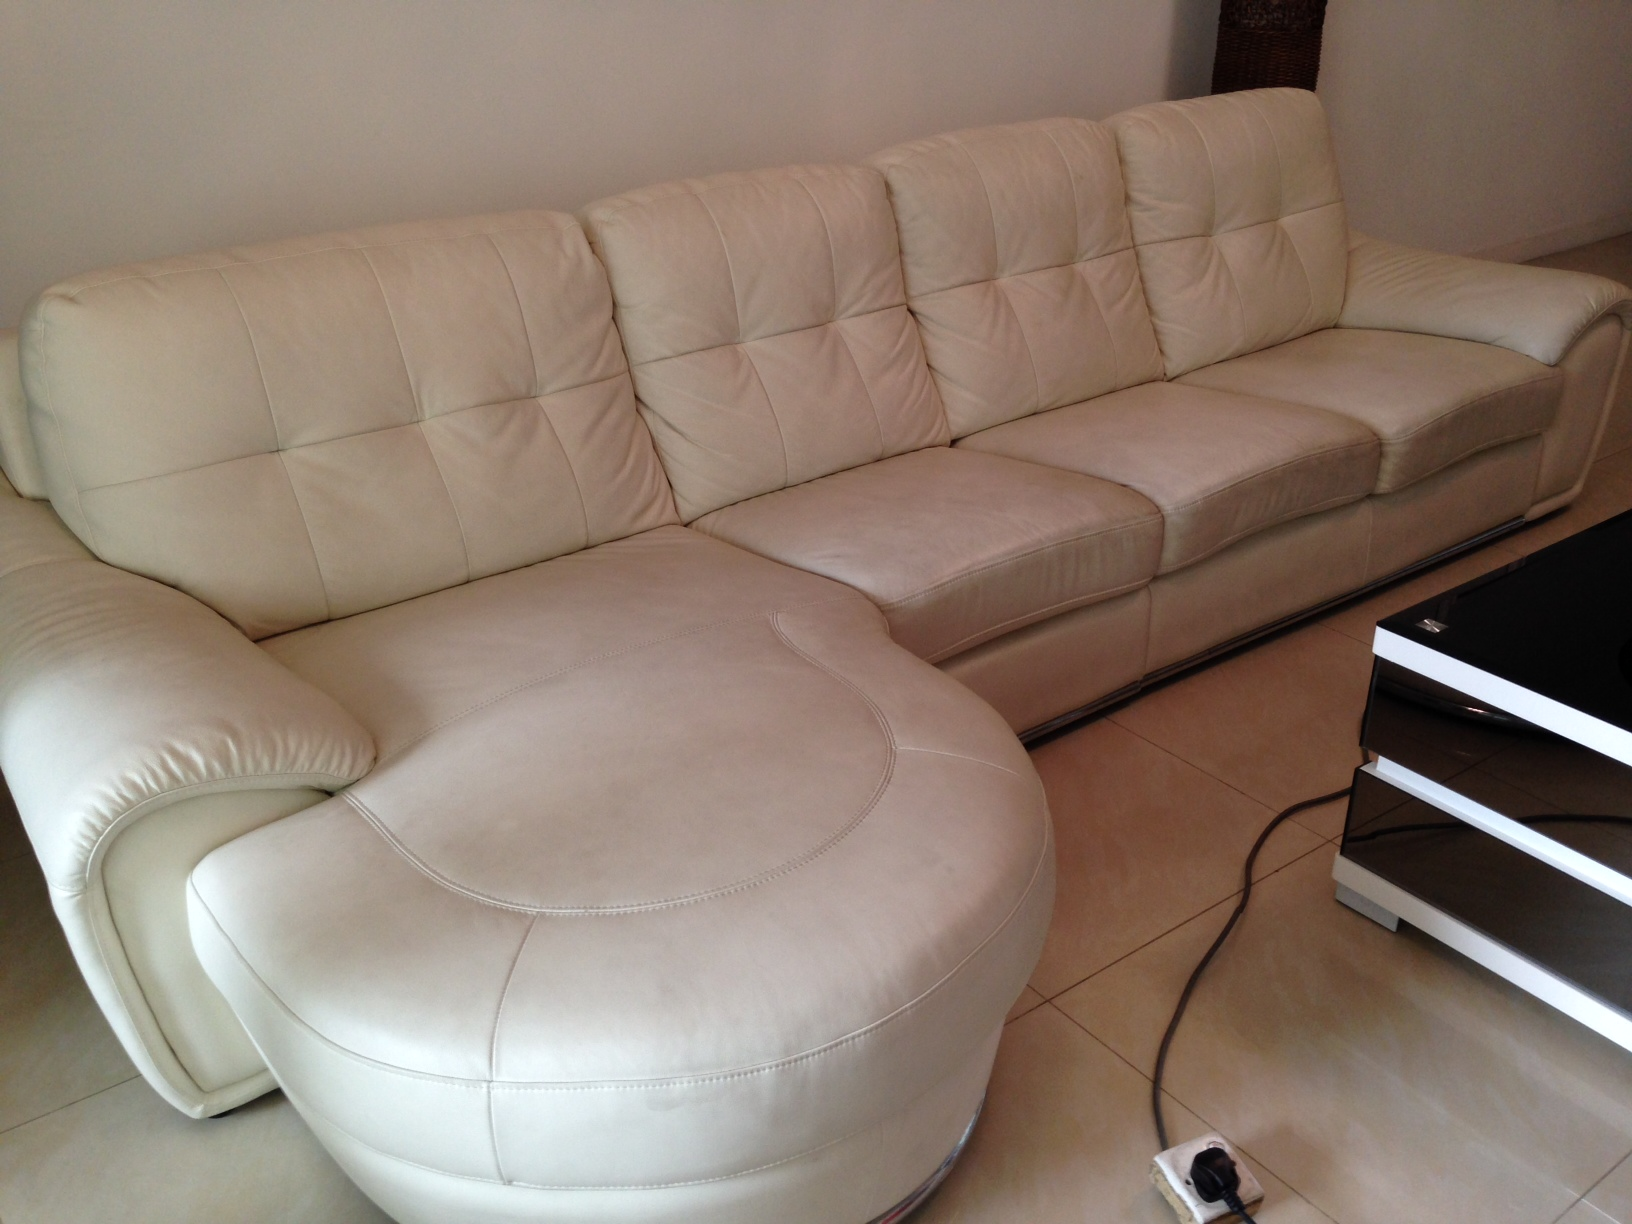 leather sofa cleaner singapore sofas italianos madrid cleaning service alphakleen